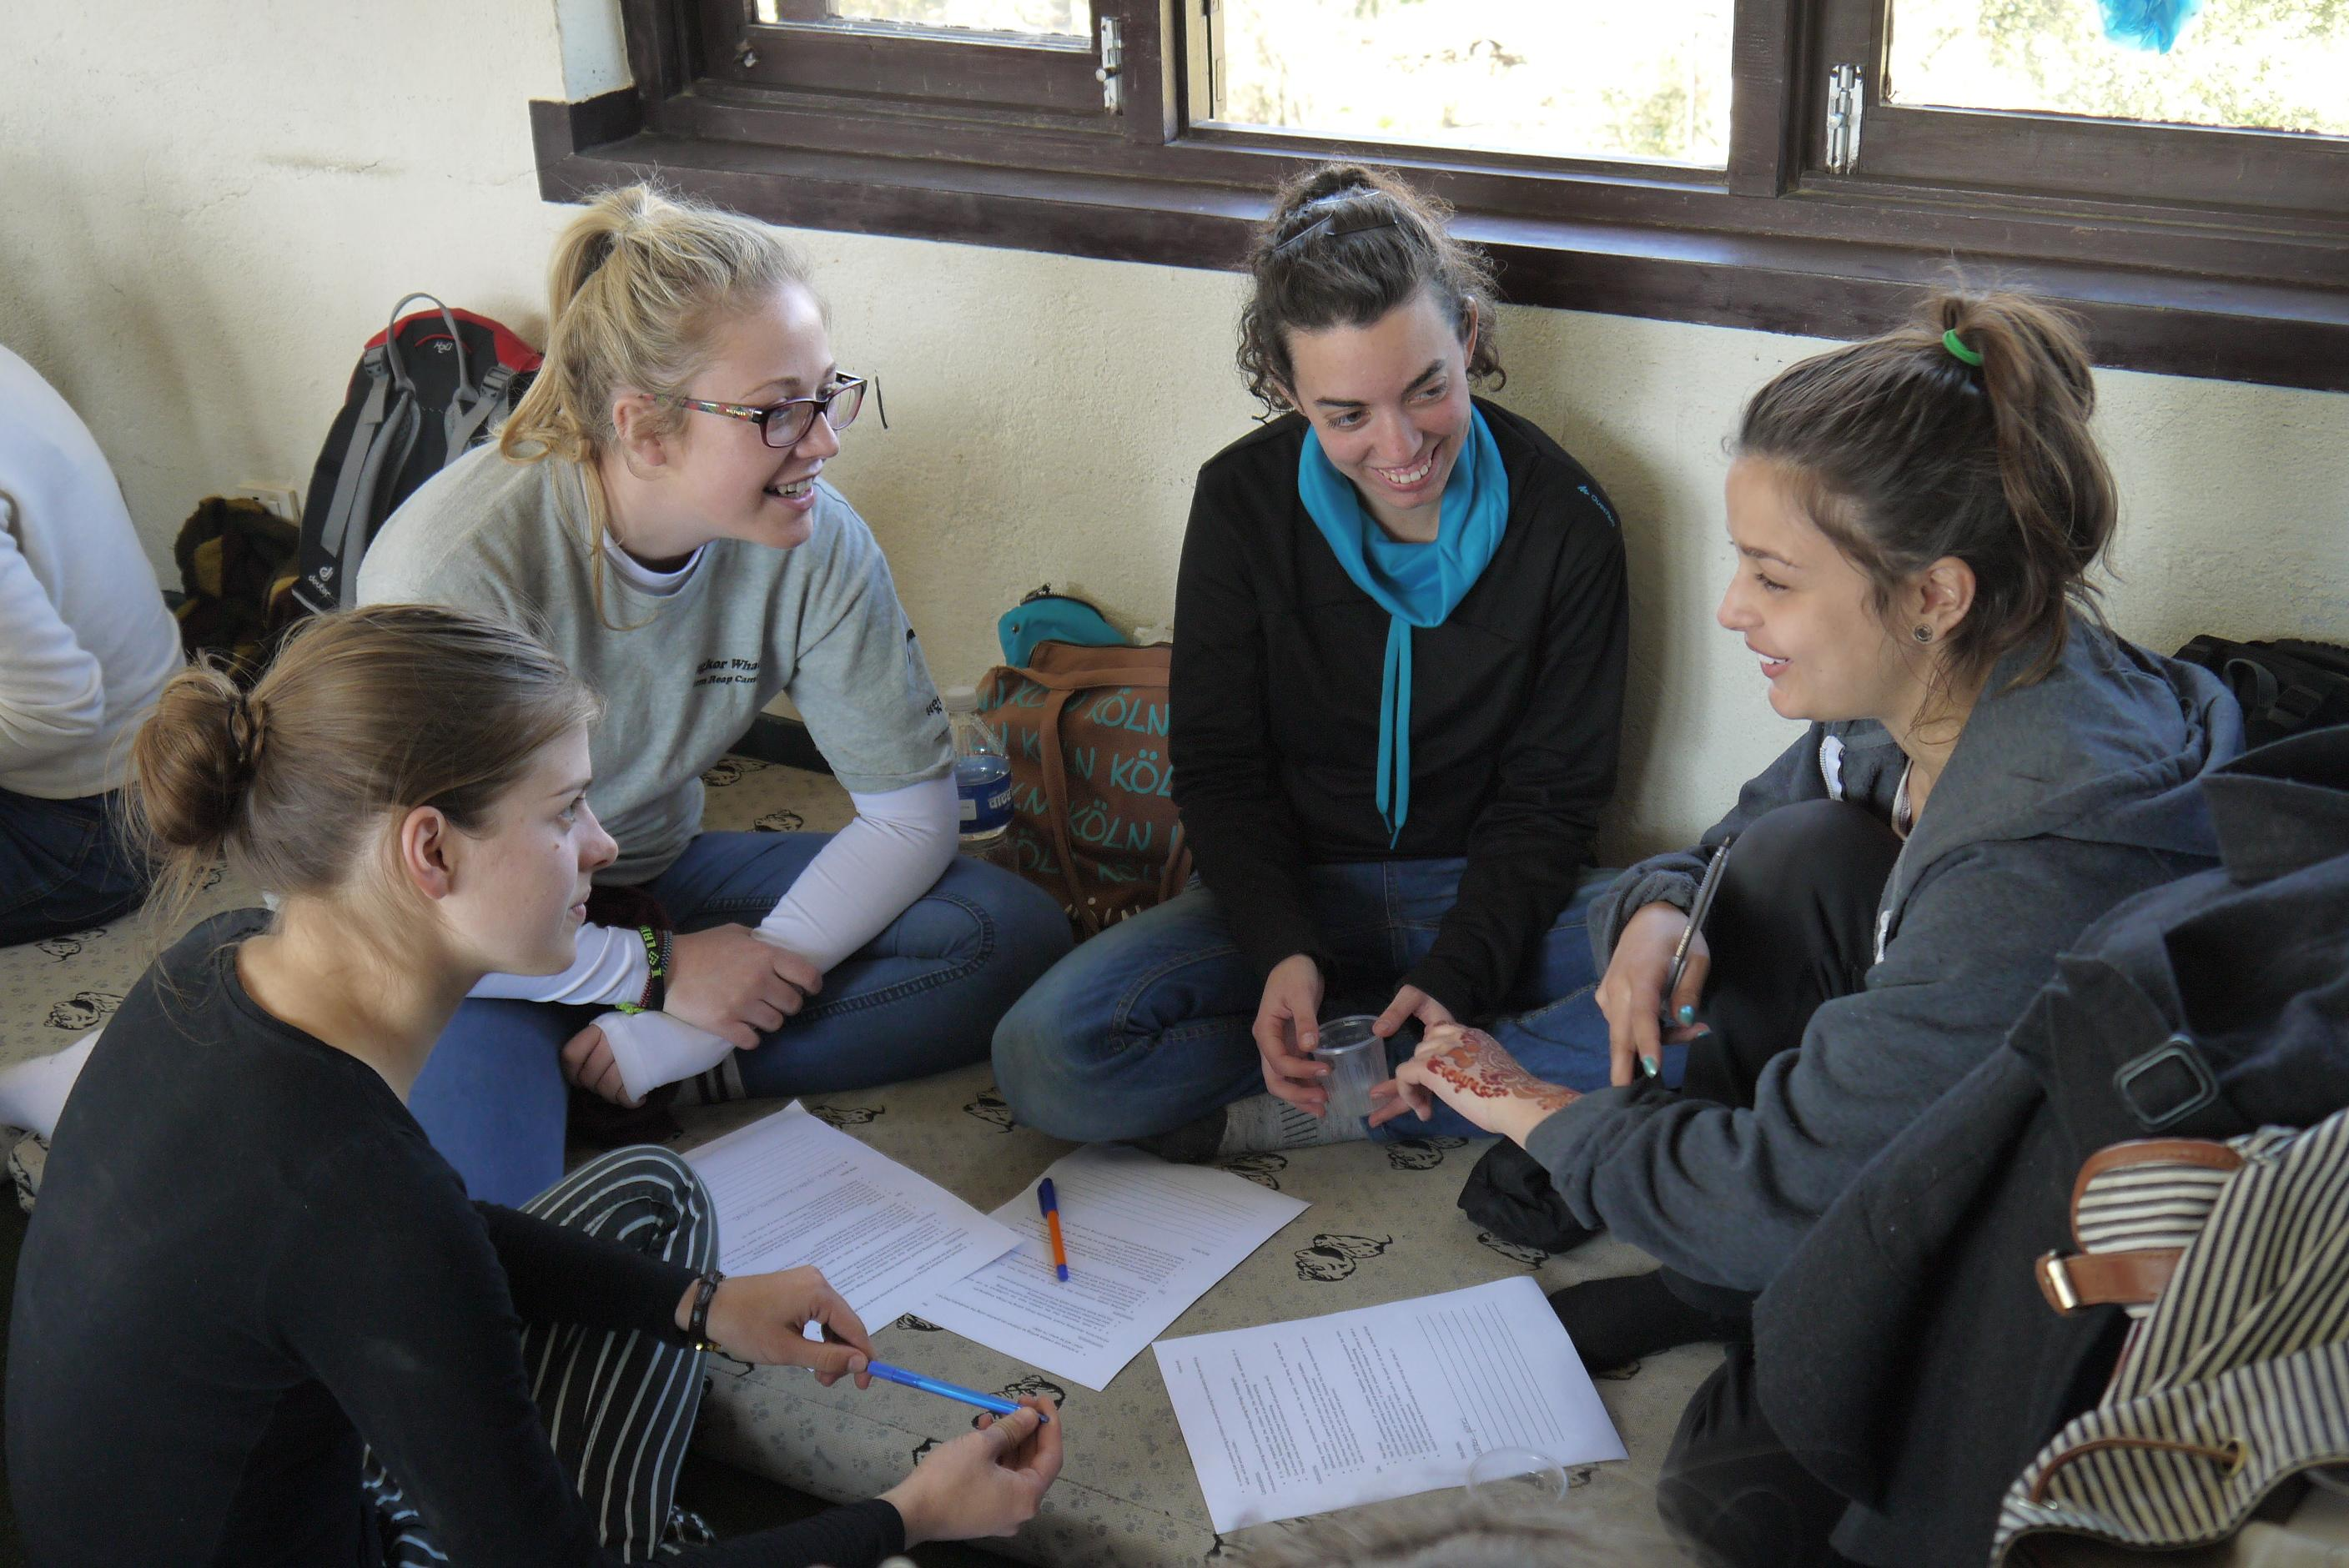 Projects Abroad female Care HIV/Aids volunteers working in Nepal prepare an educational activity.